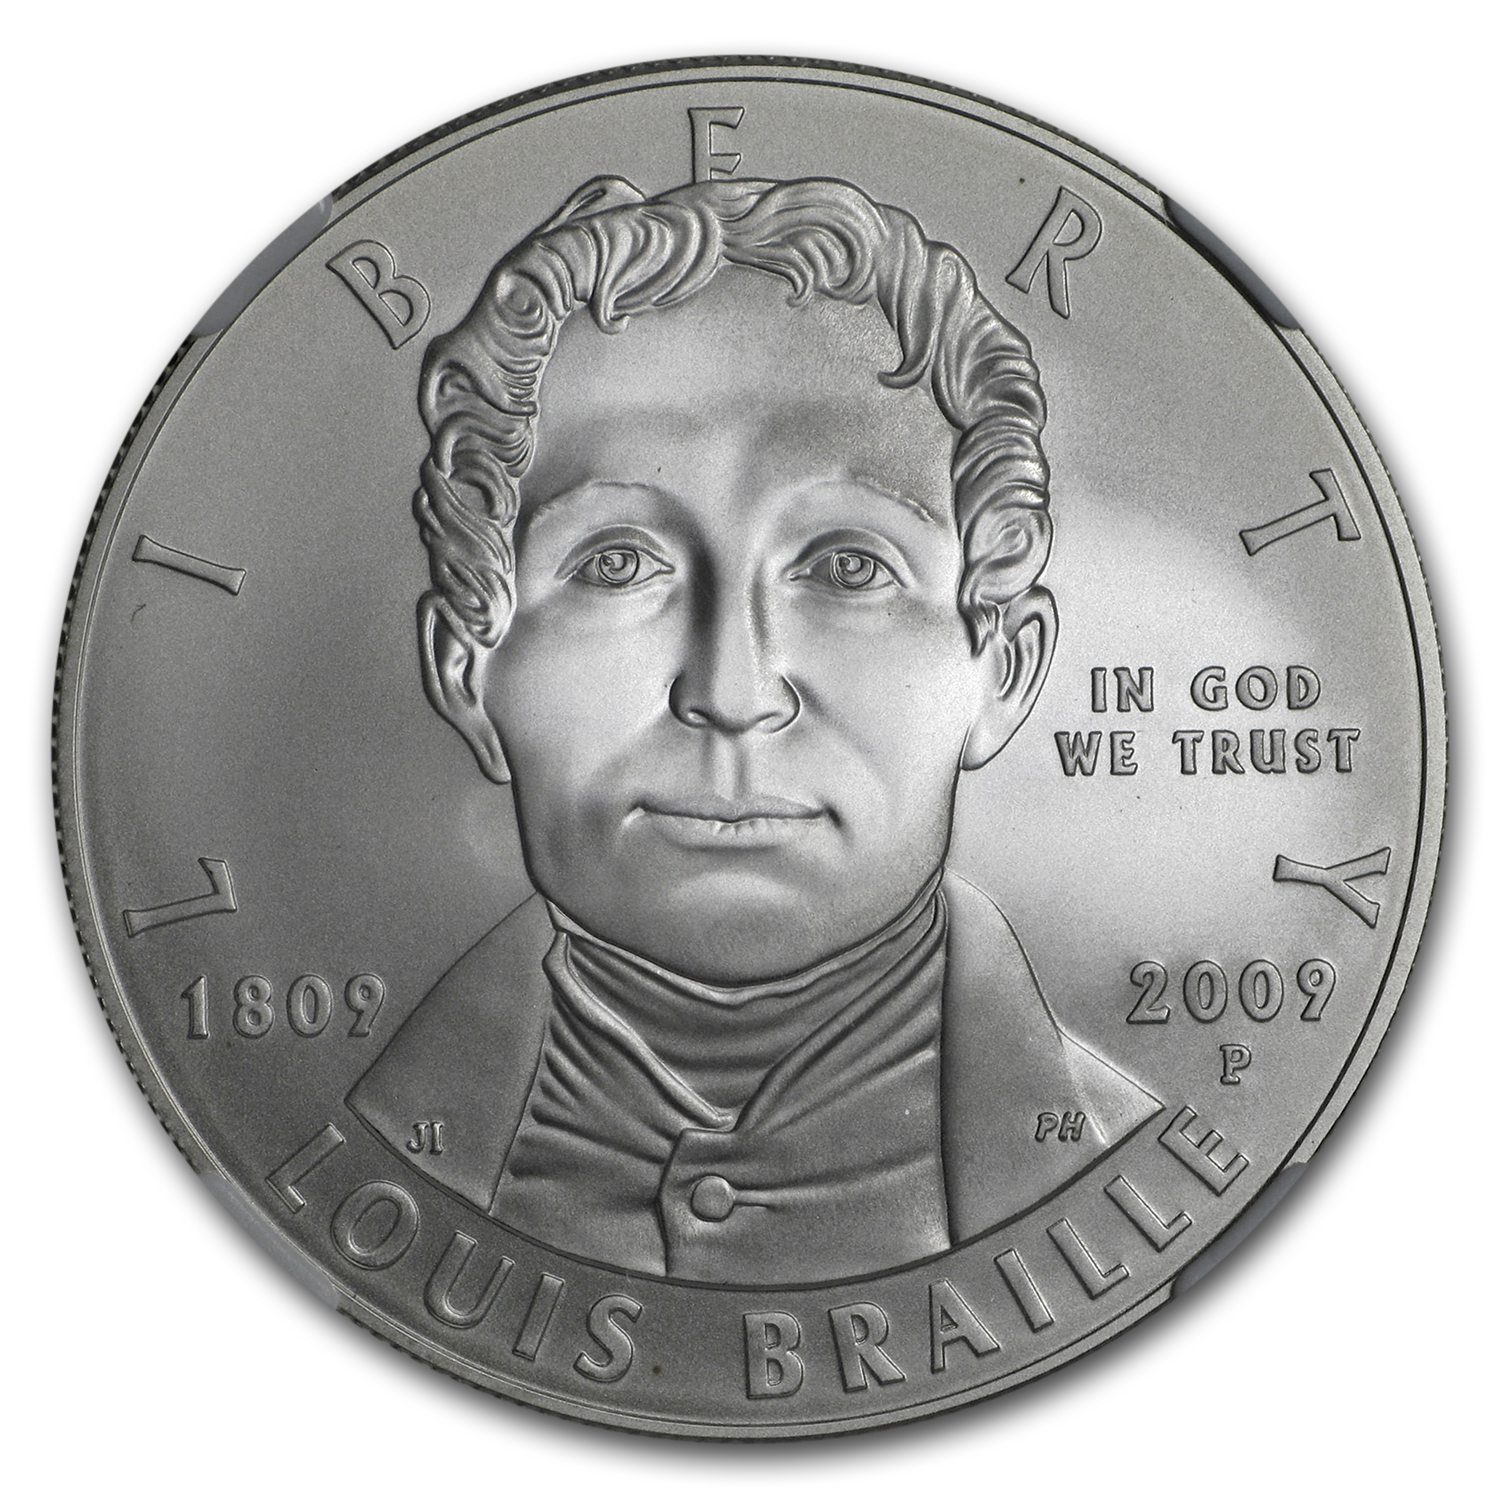 2009-P Louis Braille $1 Silver Commem PF-70 NGC